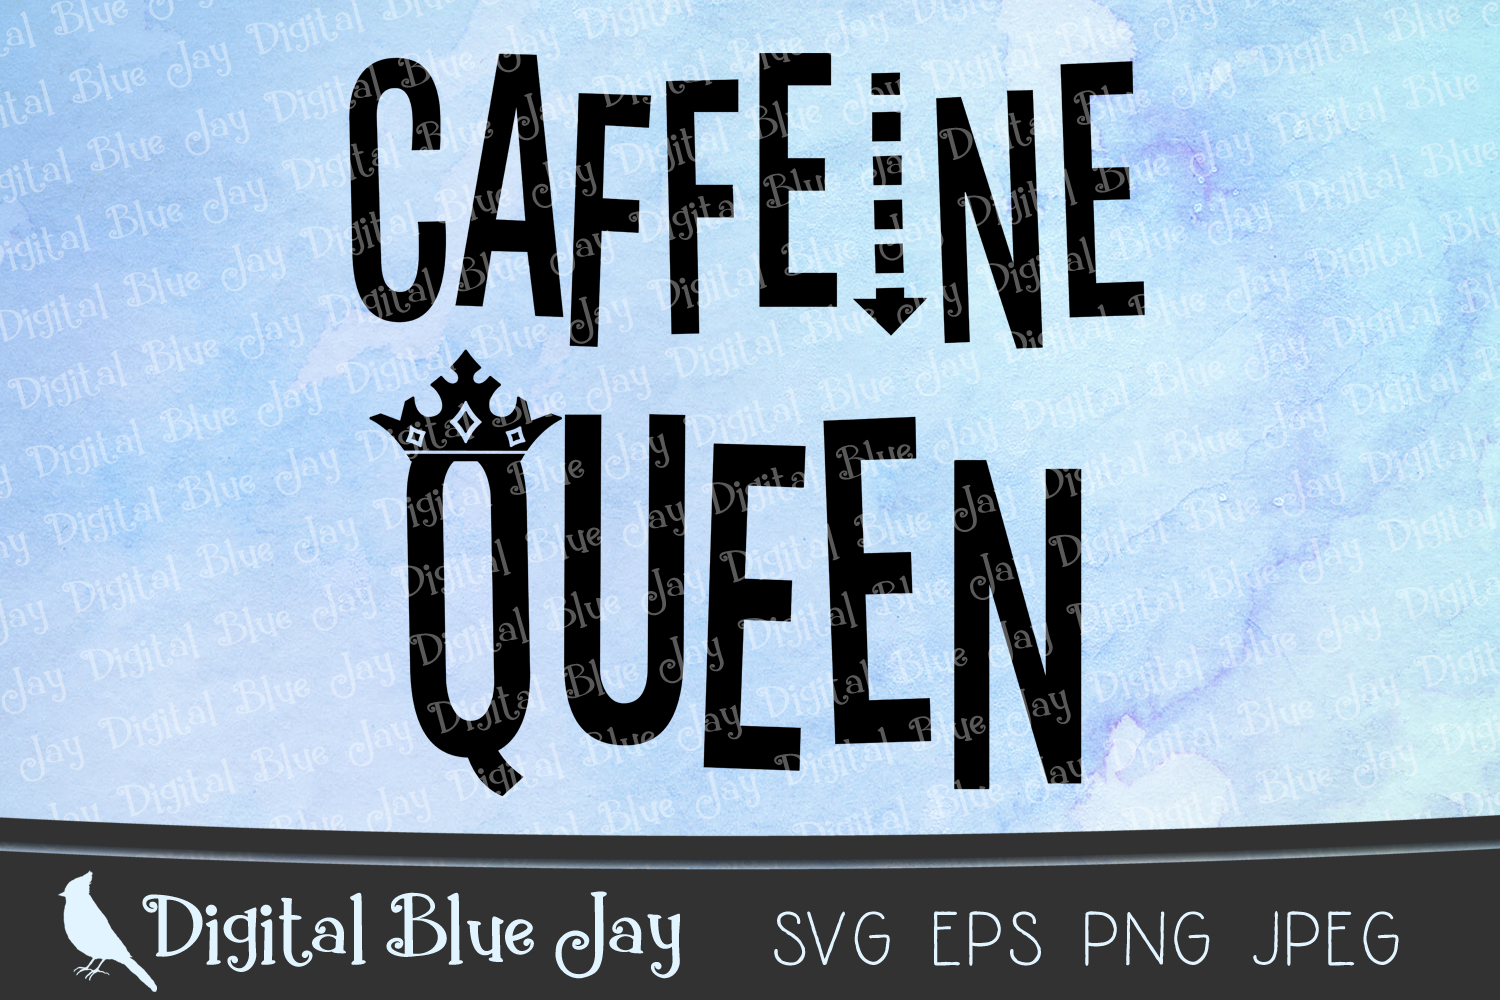 Caffeine Queen SVG PNG Cut Files example image 1